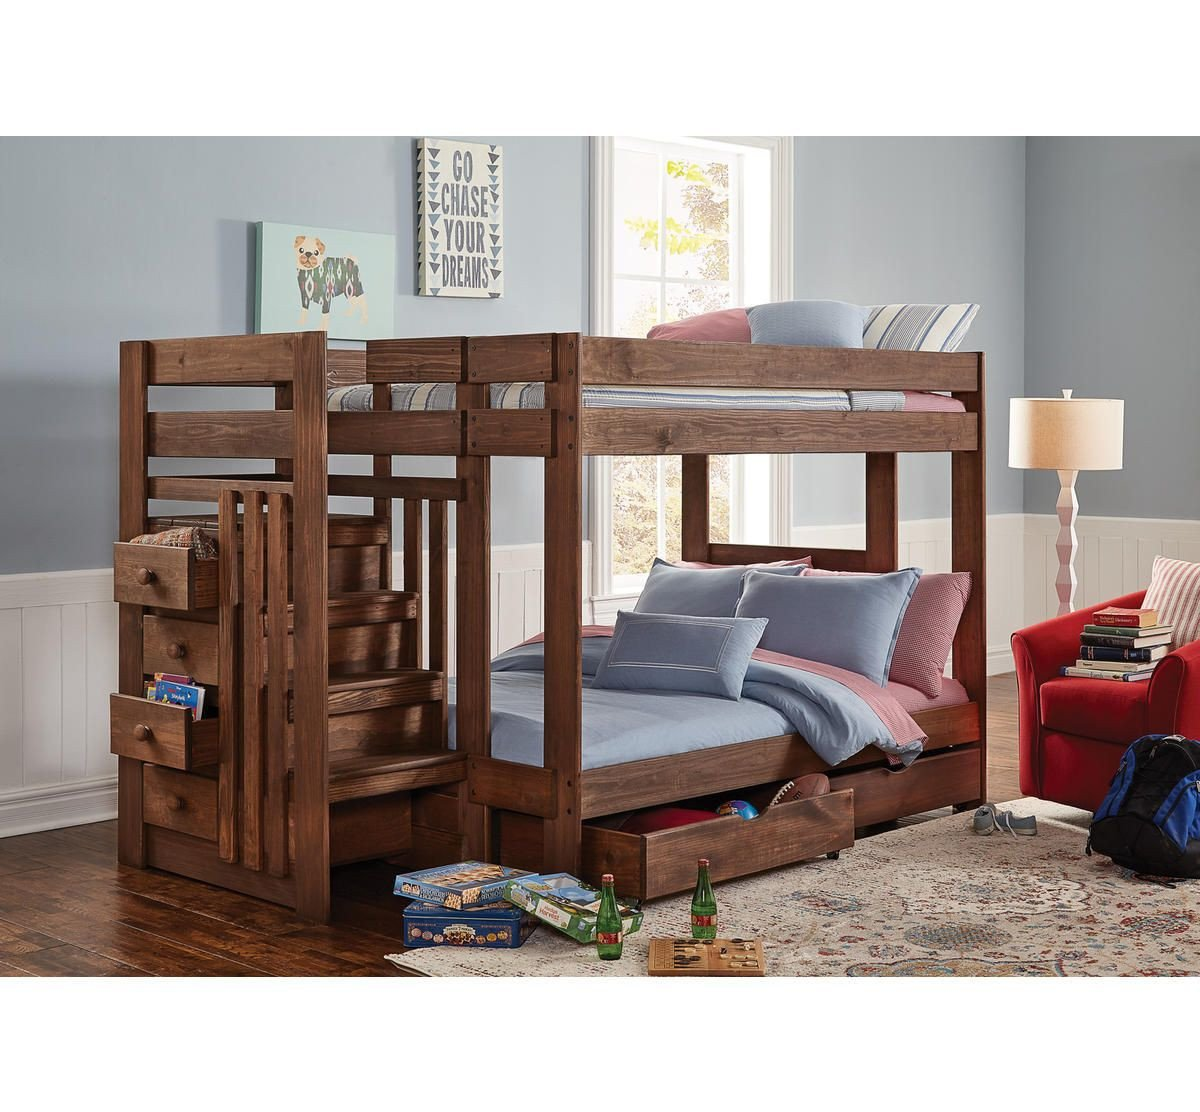 Boy Full Size Bedroom Set Unique Baylee Full Over Full Stairbed